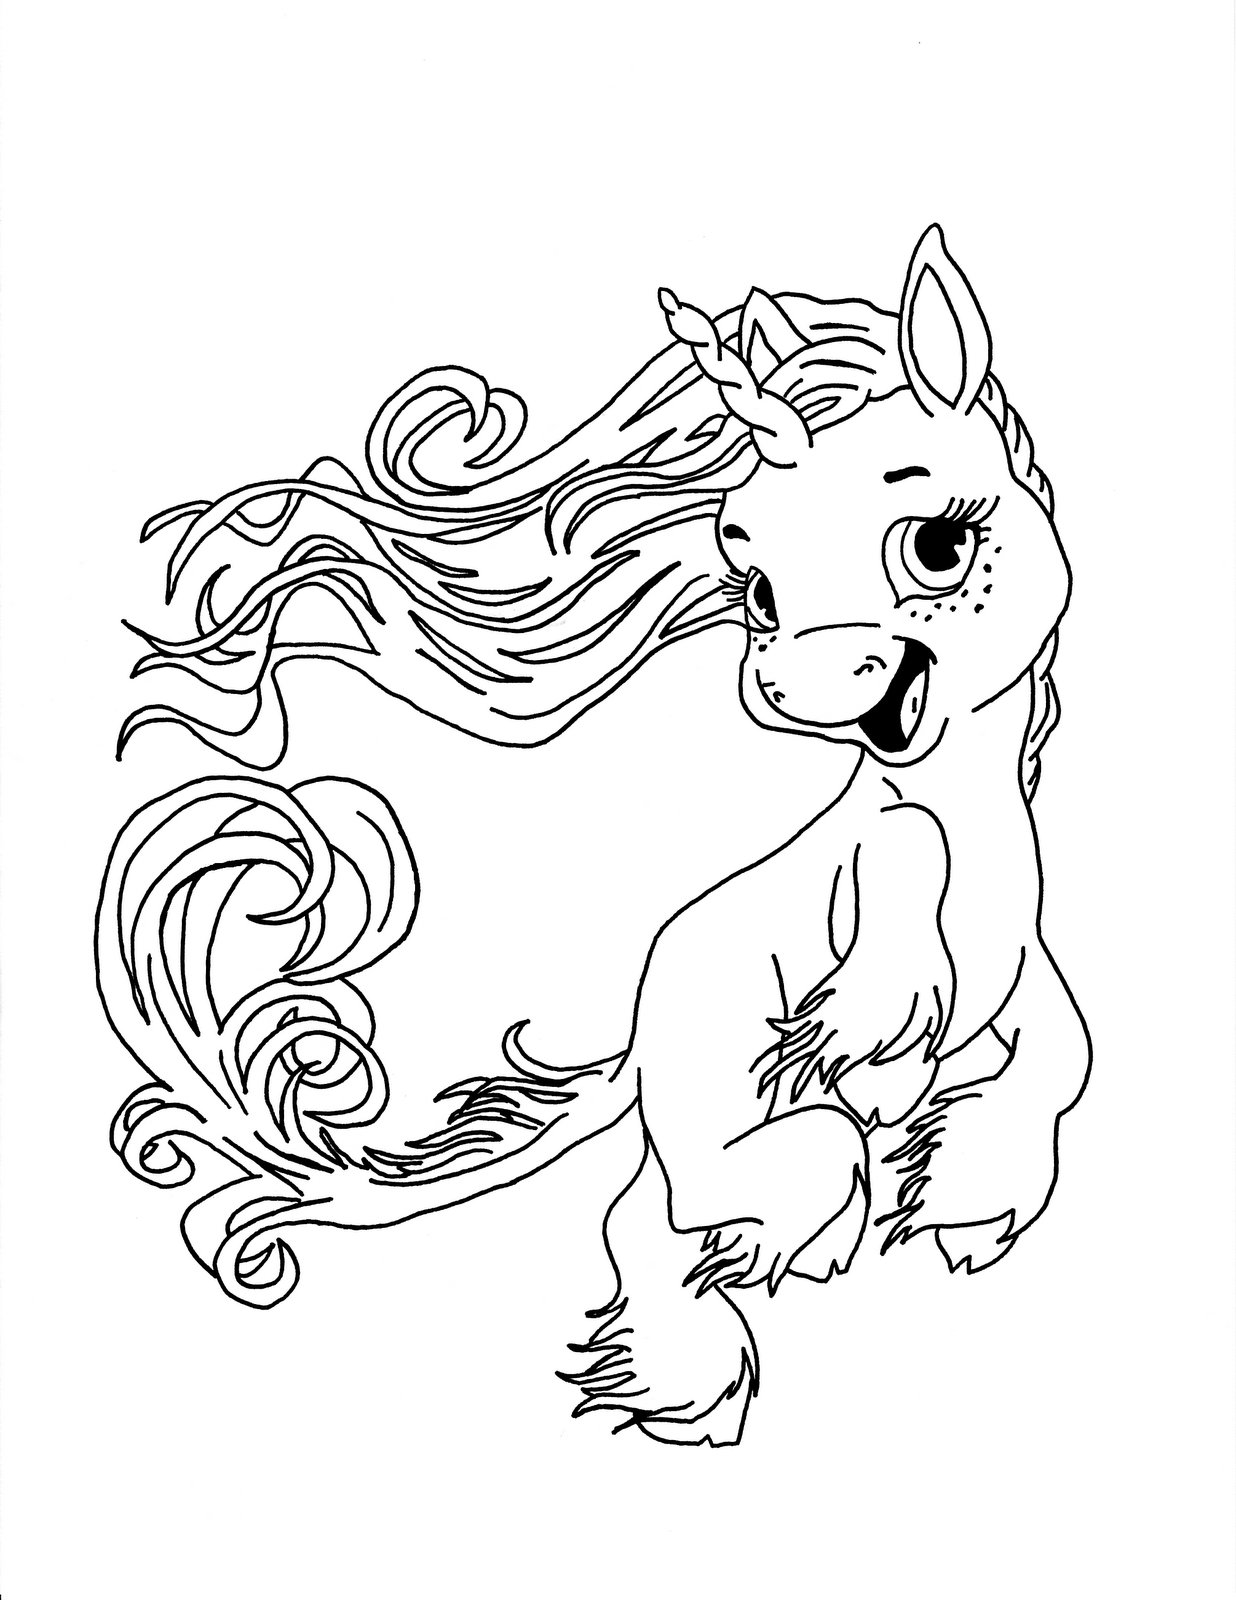 Unicorns Colotring Pages | Designs | Pinterest | Unicorns, Fairy and ...